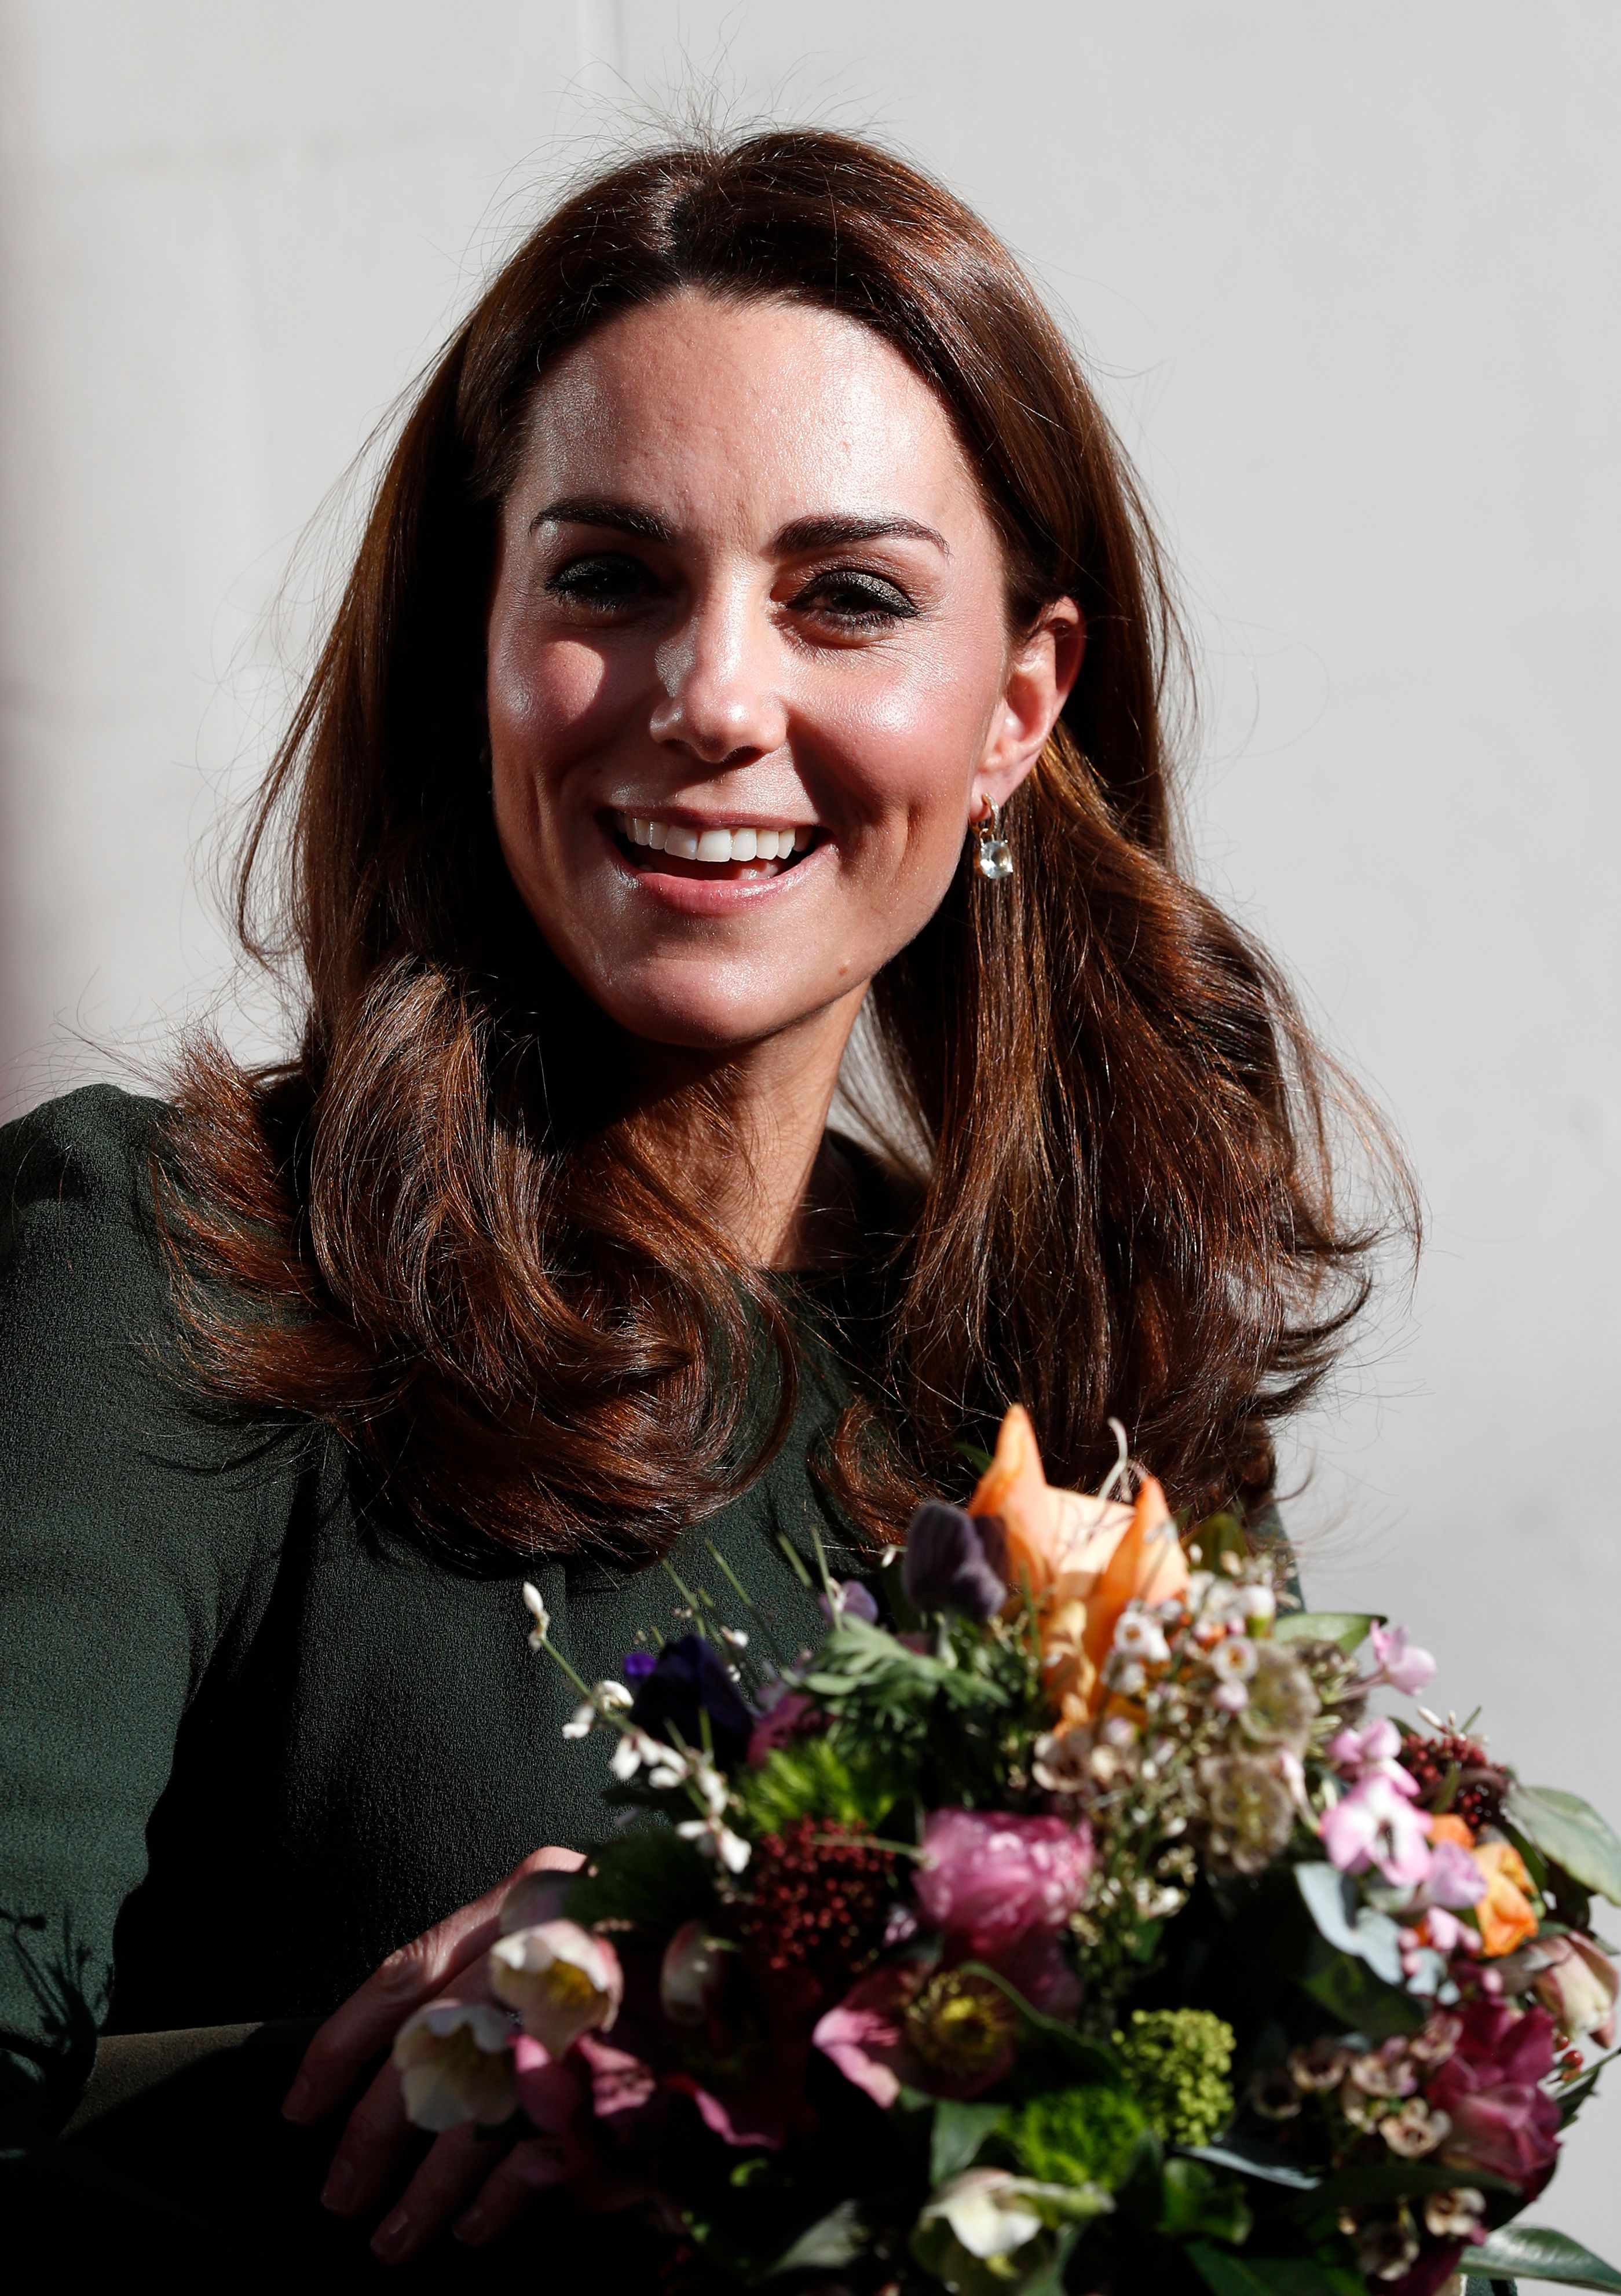 Kate Middleton wows in flowing green belted outfit from